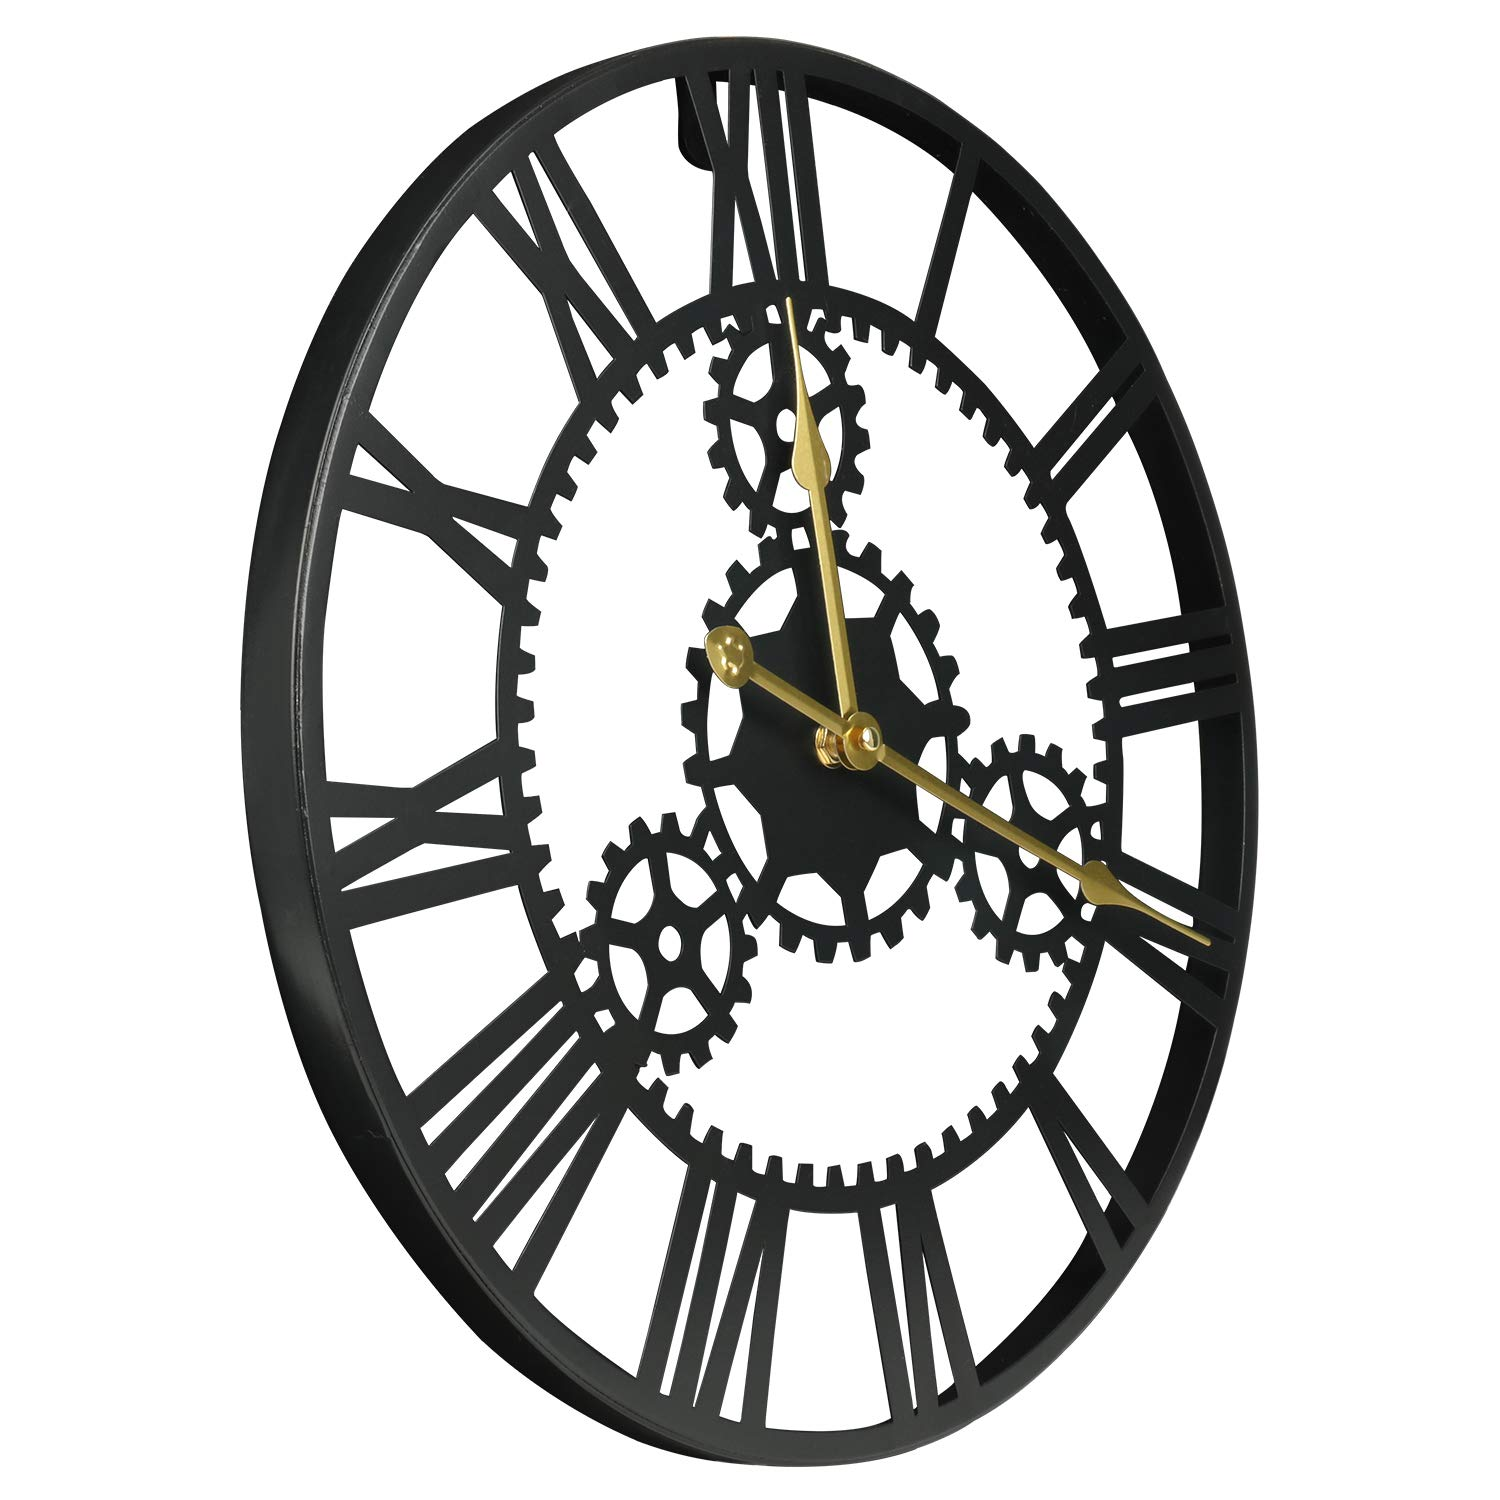 ShuaXin Large Home and Office Decorative Black Iron Wall Clock,16 Inch Antique Industrial Style 3D Hollow Gear Big Roman Numerals Art Metal Wall Clock